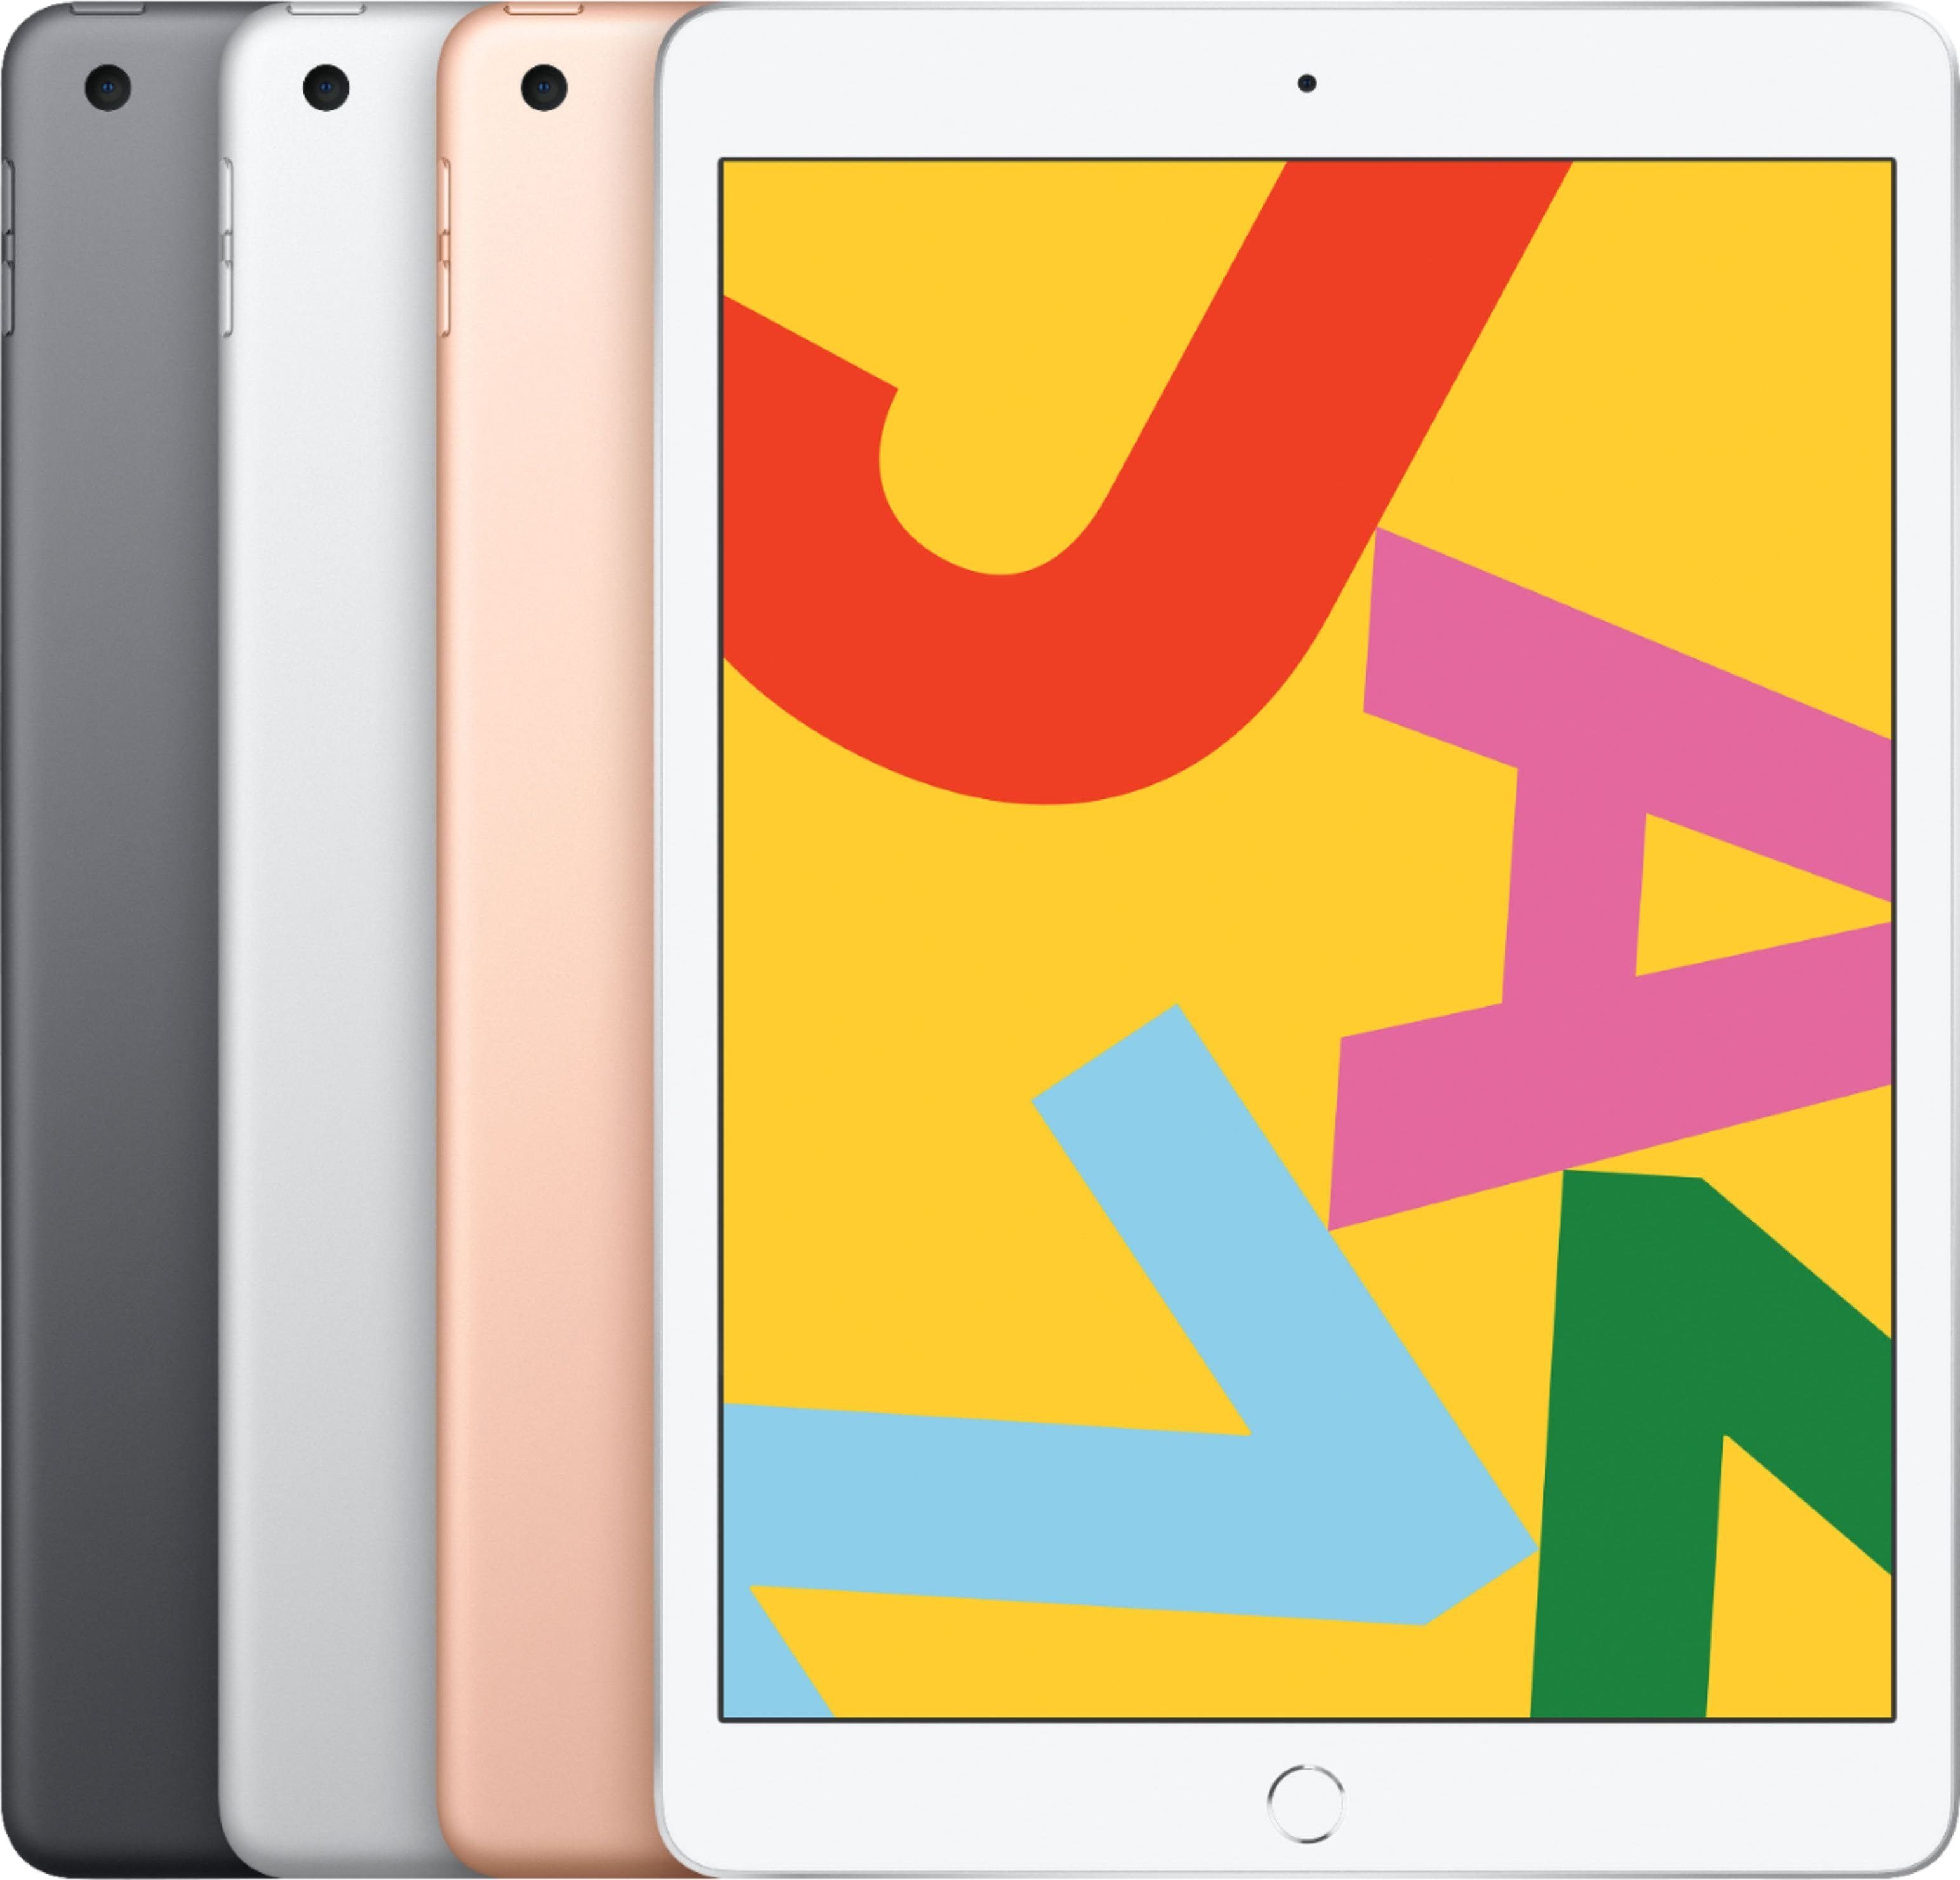 Apple - iPad (Latest Model) with Wi-Fi - 32GB - Various Colors - Free shipping $249.99